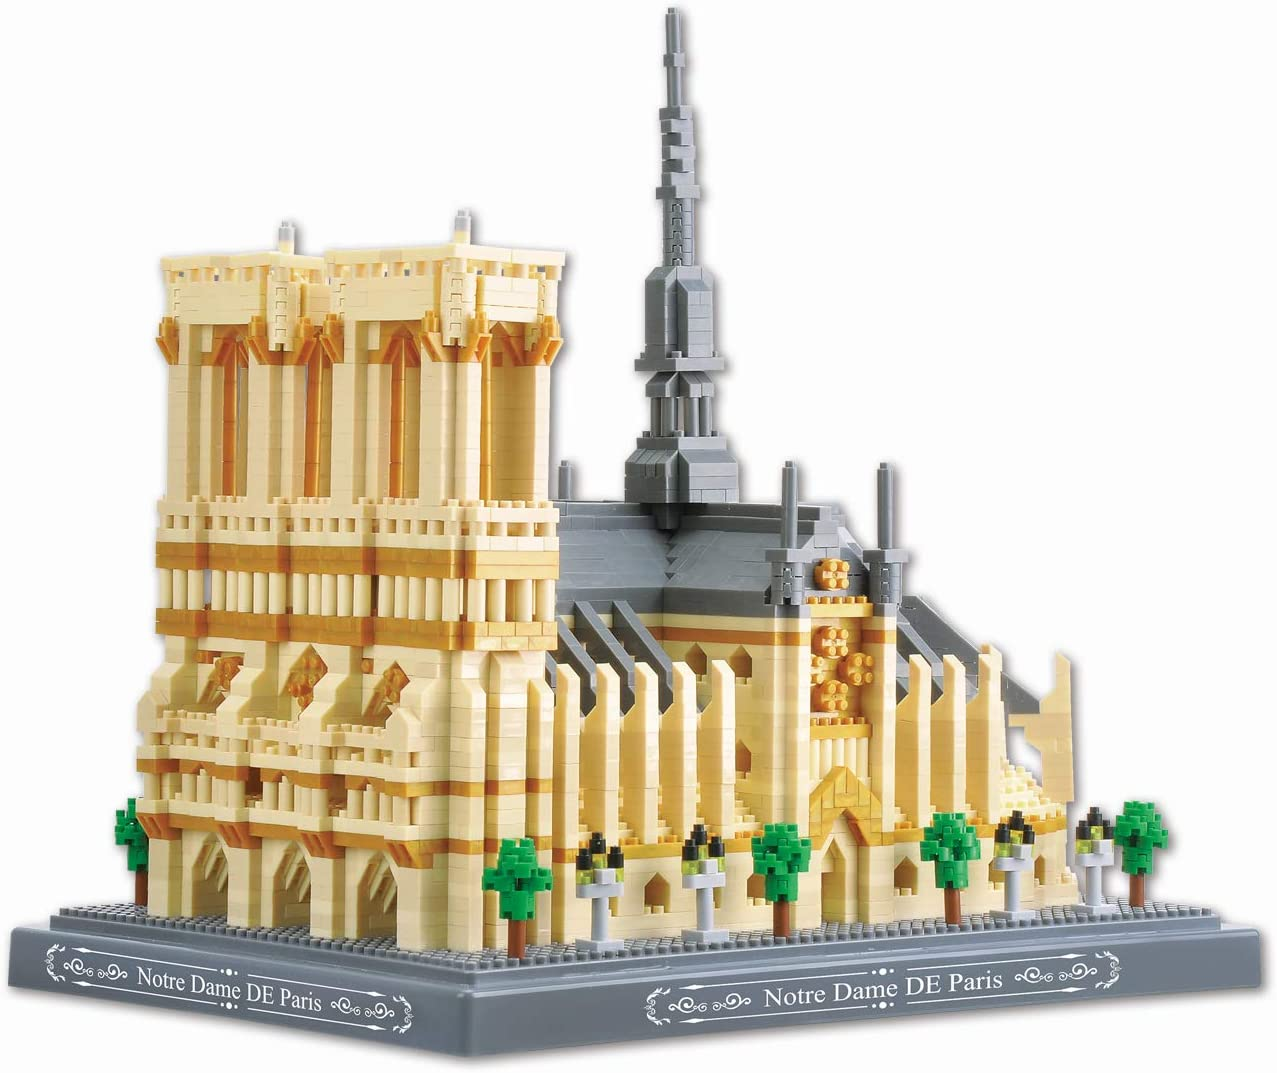 NeoLeo Micro Block Architecture Model Notre Dame de Paris French, Challenge for Adults Children, Cathedral Architecture Church Building Model Kits, 4018 Pieces